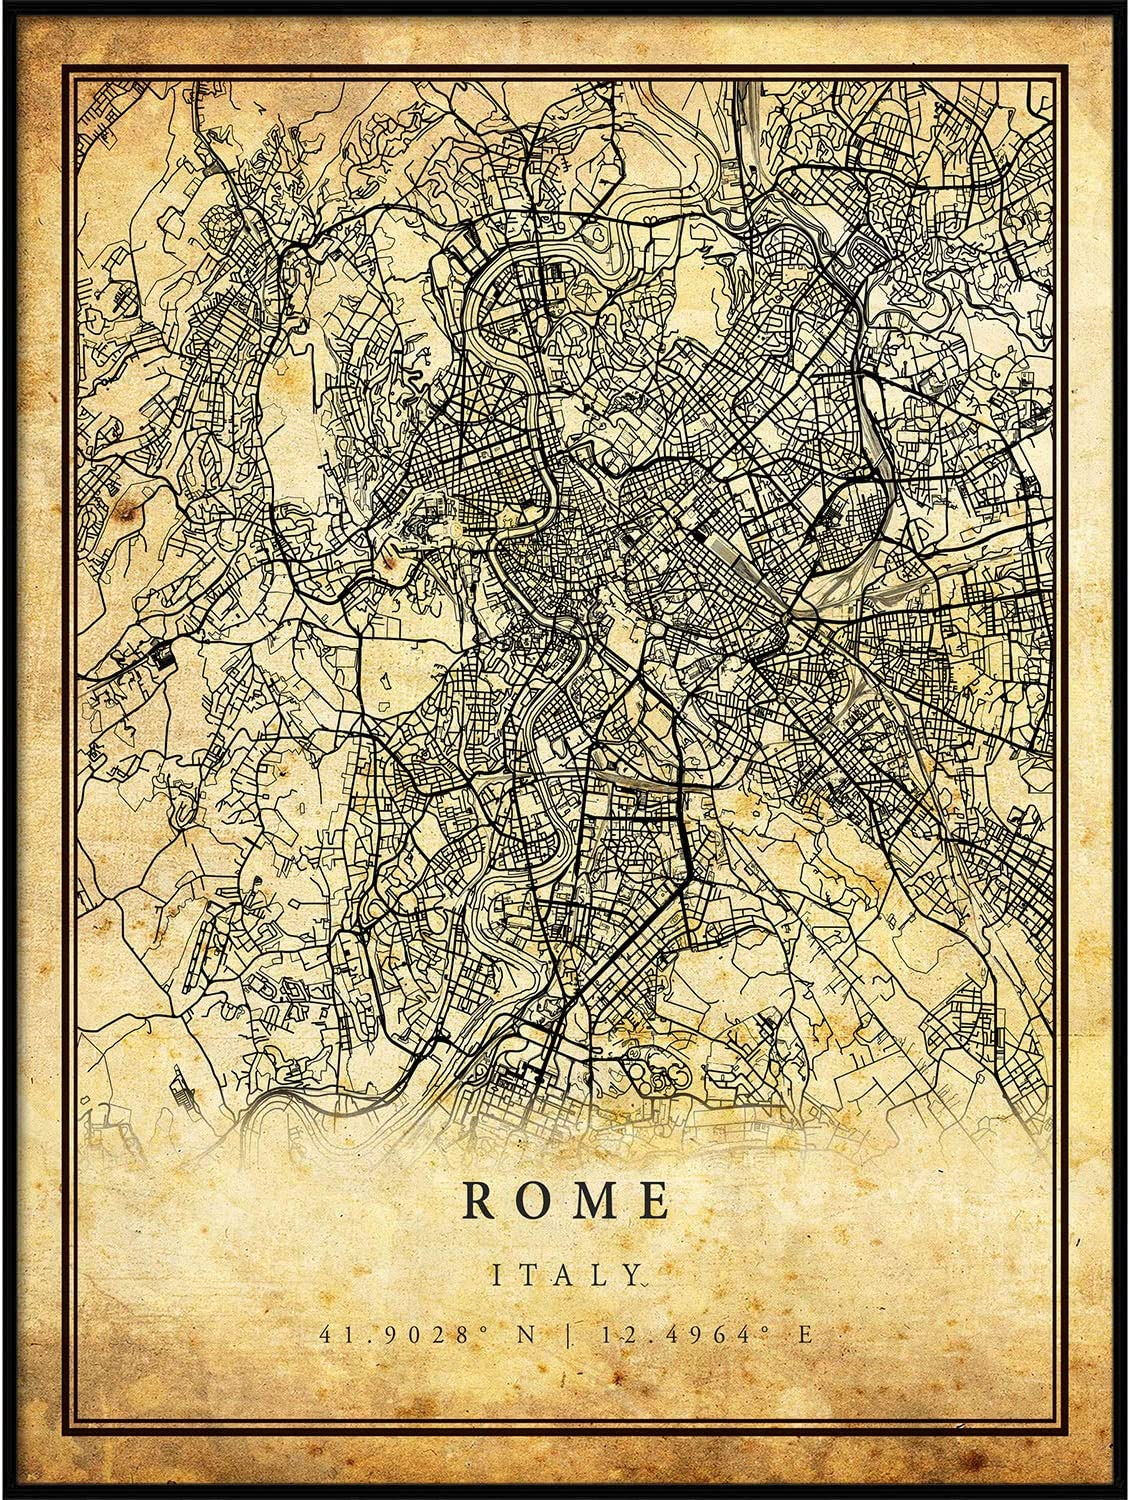 Rome Fees free map Vintage Style Manufacturer regenerated product Poster City Artwork Prints Print Old